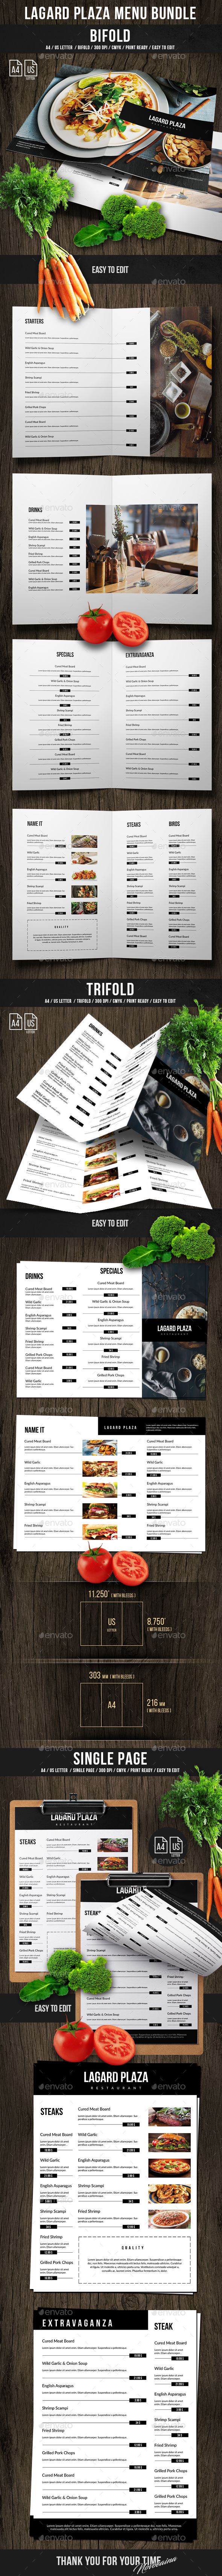 Lagard Plaza Food Menu Bundle - Food Menus Print Templates